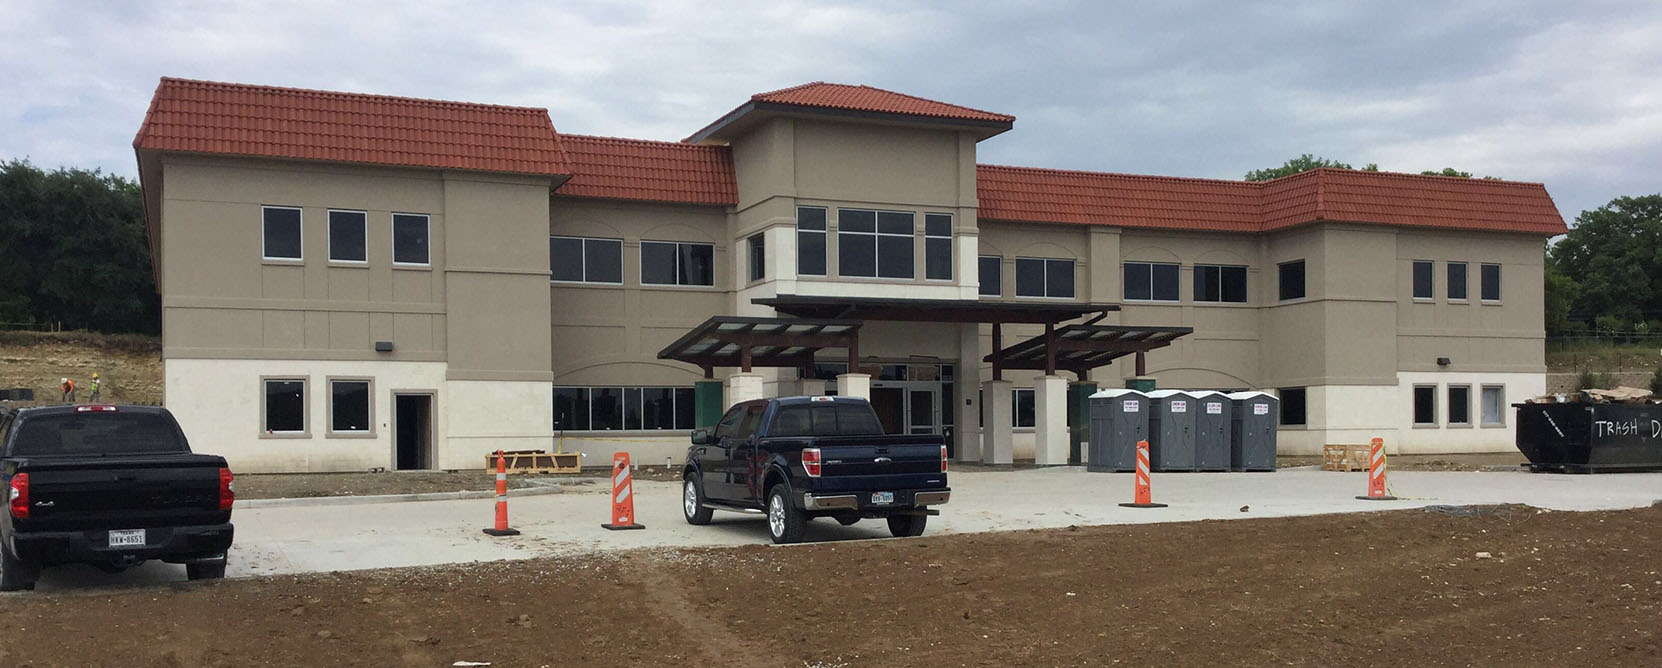 Construction of the North Texas Area Community Health Center